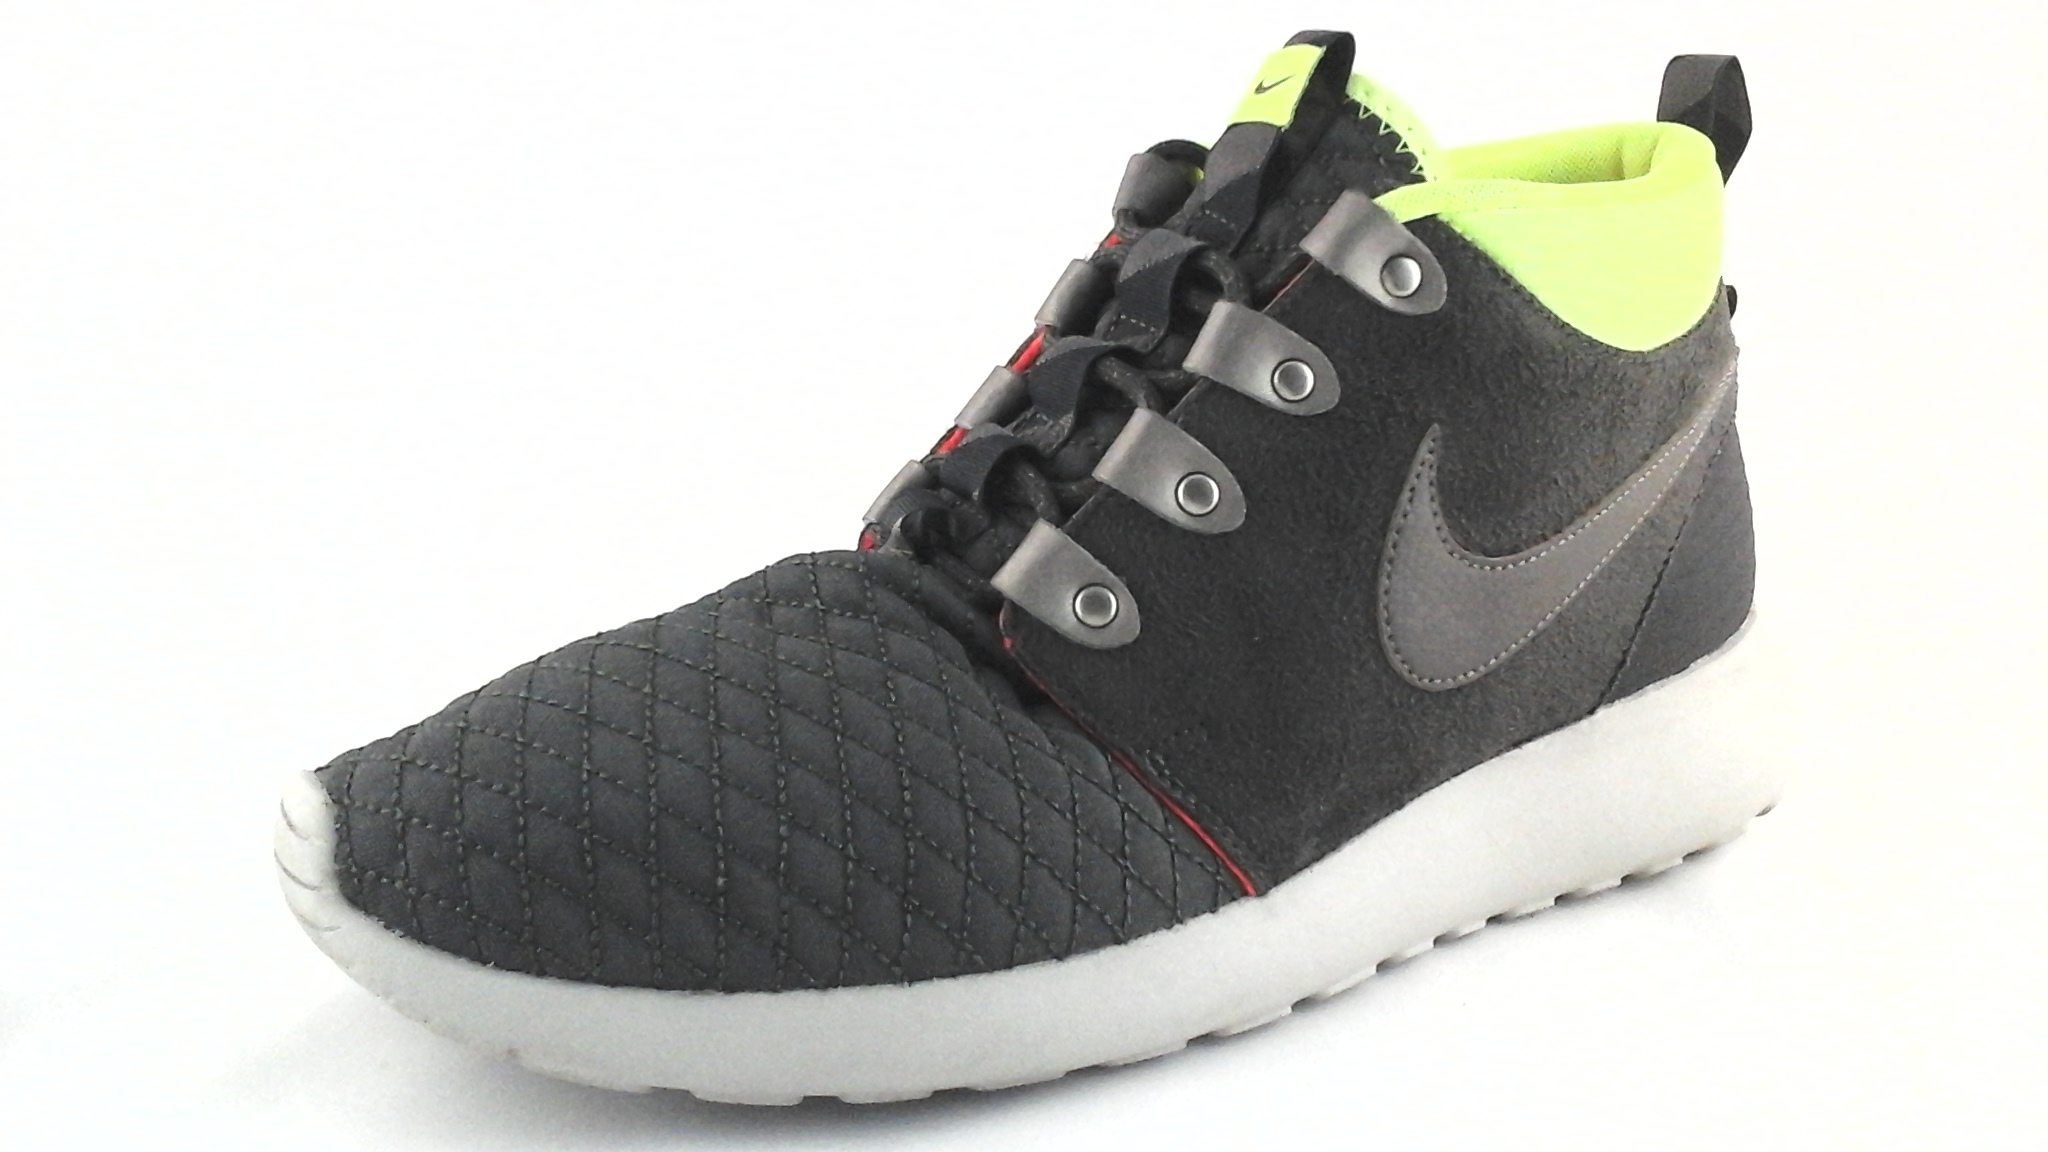 innovative design 7eea8 b62e1 Details about Nike Shoes 615601-007 Men s Roshe Run One Sneakerboot Quilt  Smoke US 9.5 EU 43